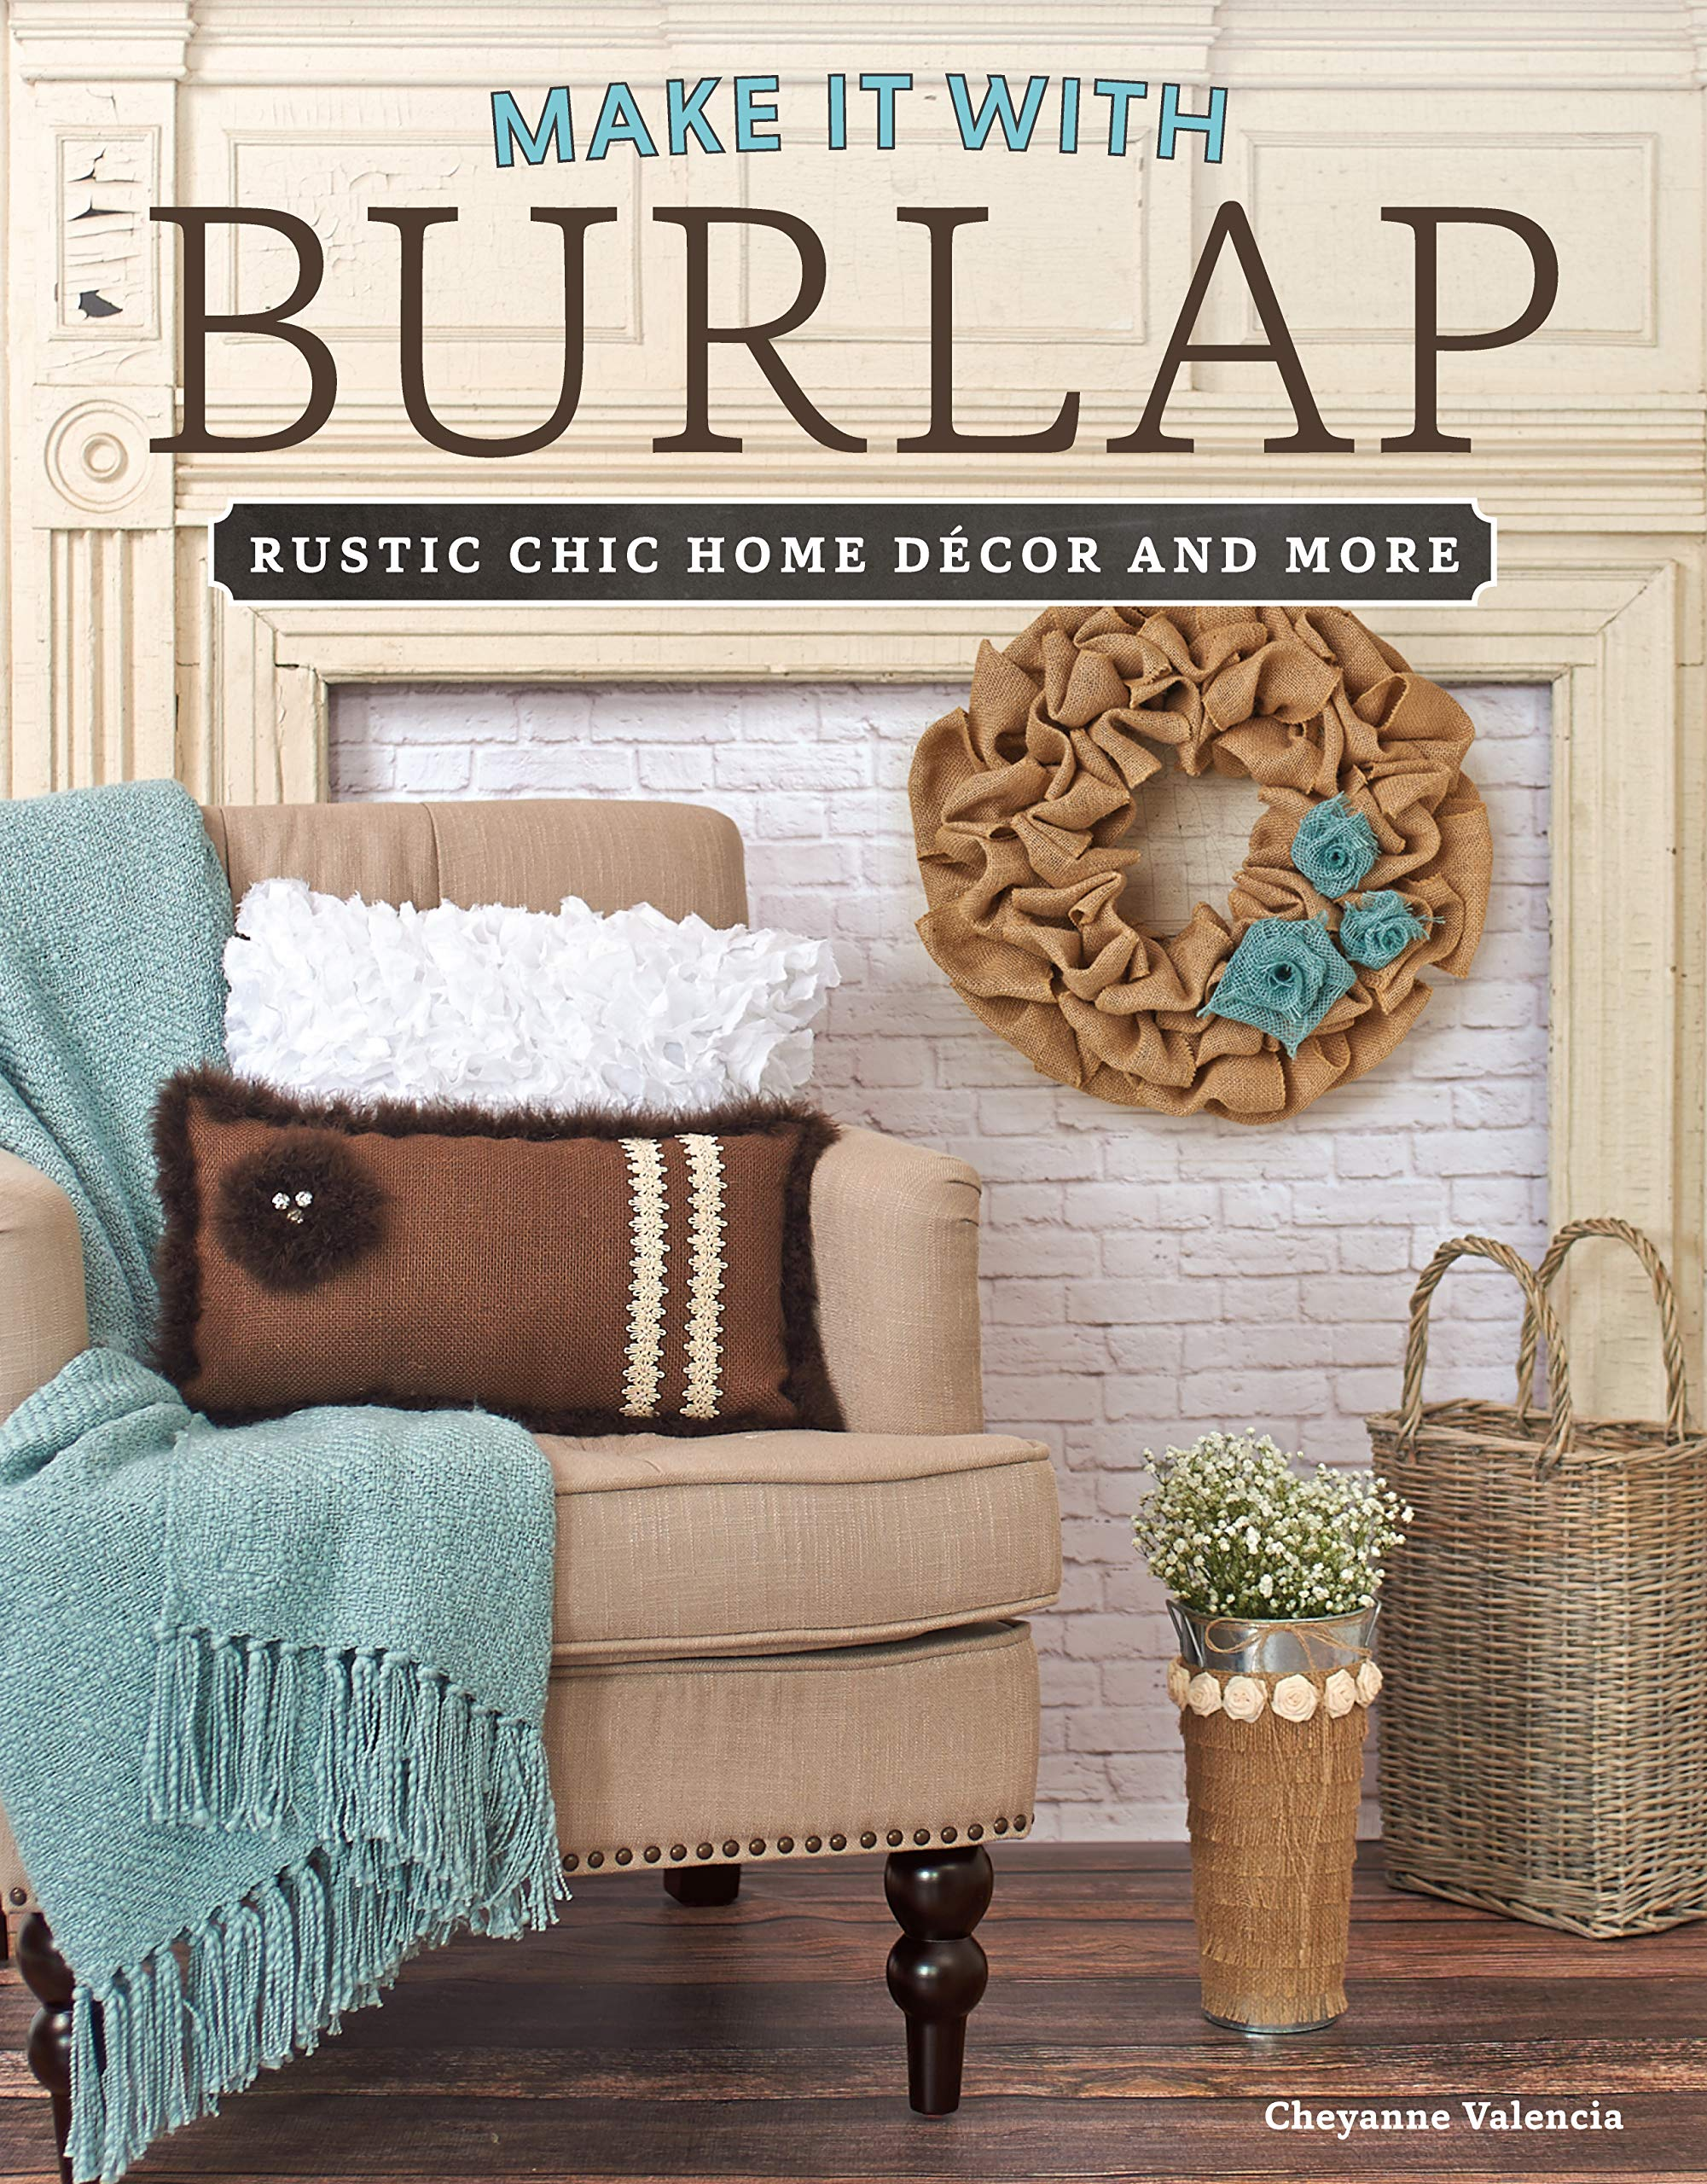 Make It with Burlap: Rustic Chic Home Decor and More (Design